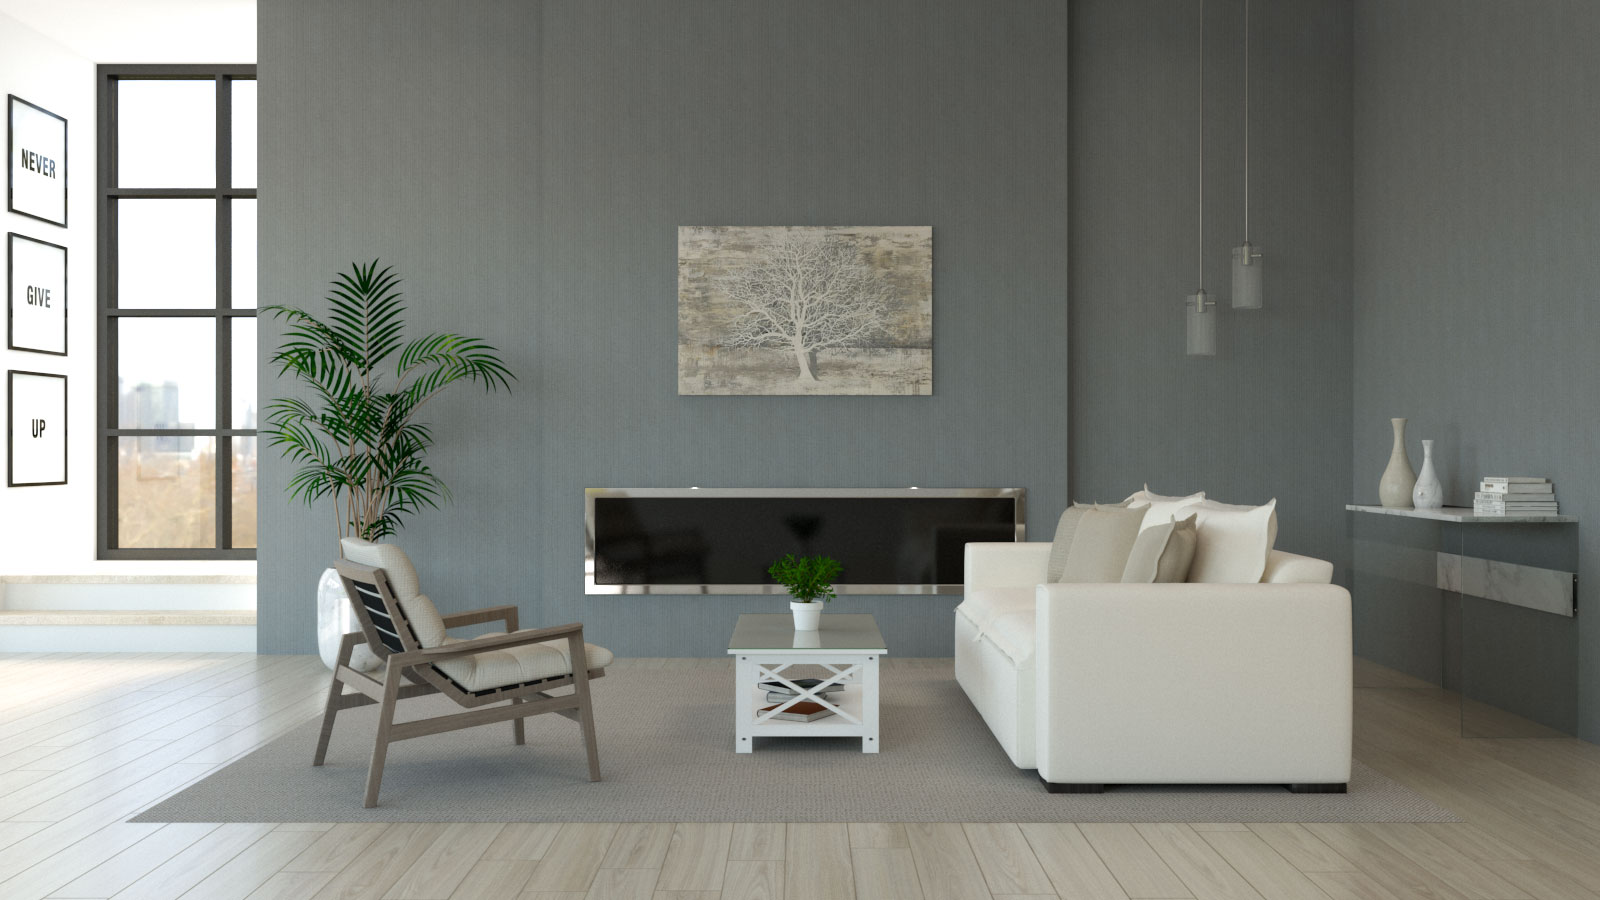 Living room with cream furniture and gray walls